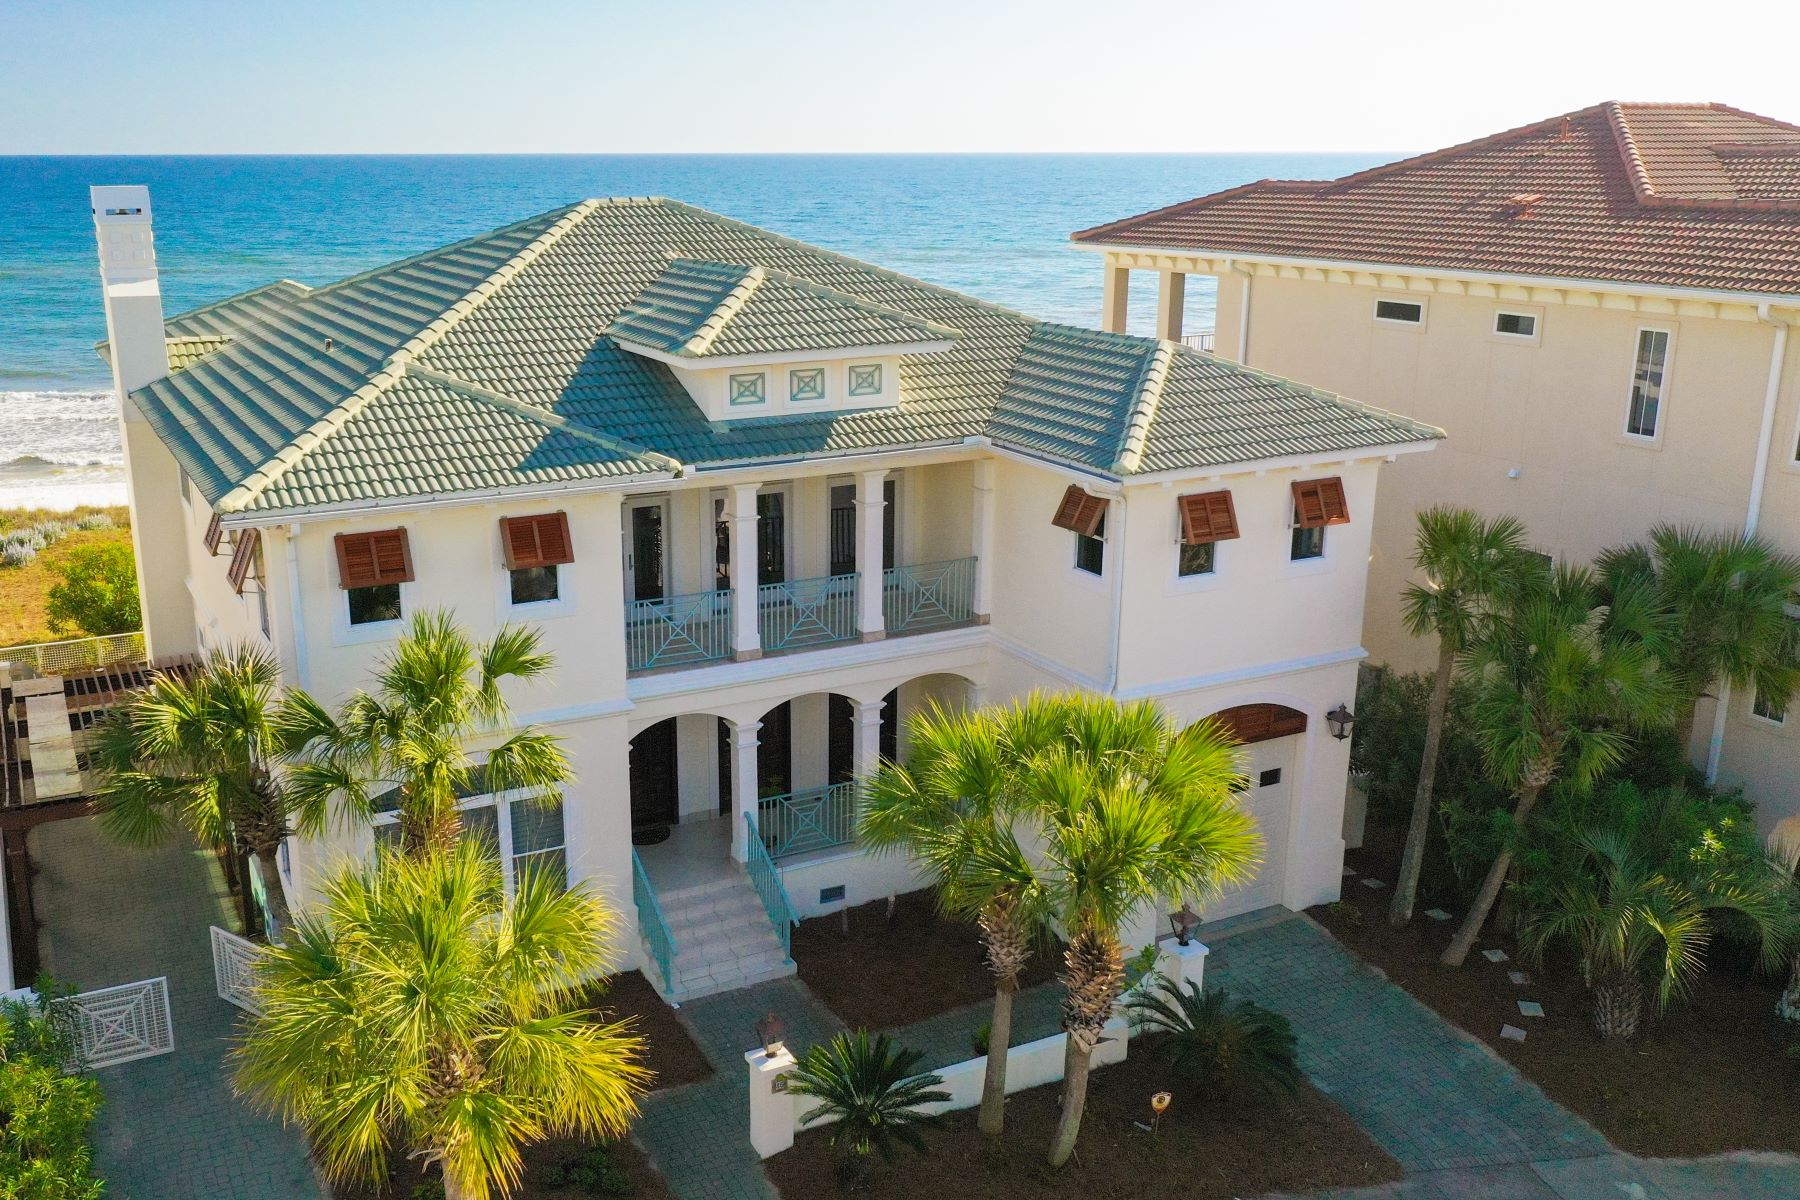 Single Family Home for Sale at Elegant Gulf Front Retreat with Elevator and Inside Surround Sound 46 White Cliffs Crest Santa Rosa Beach, Florida 32459 United States